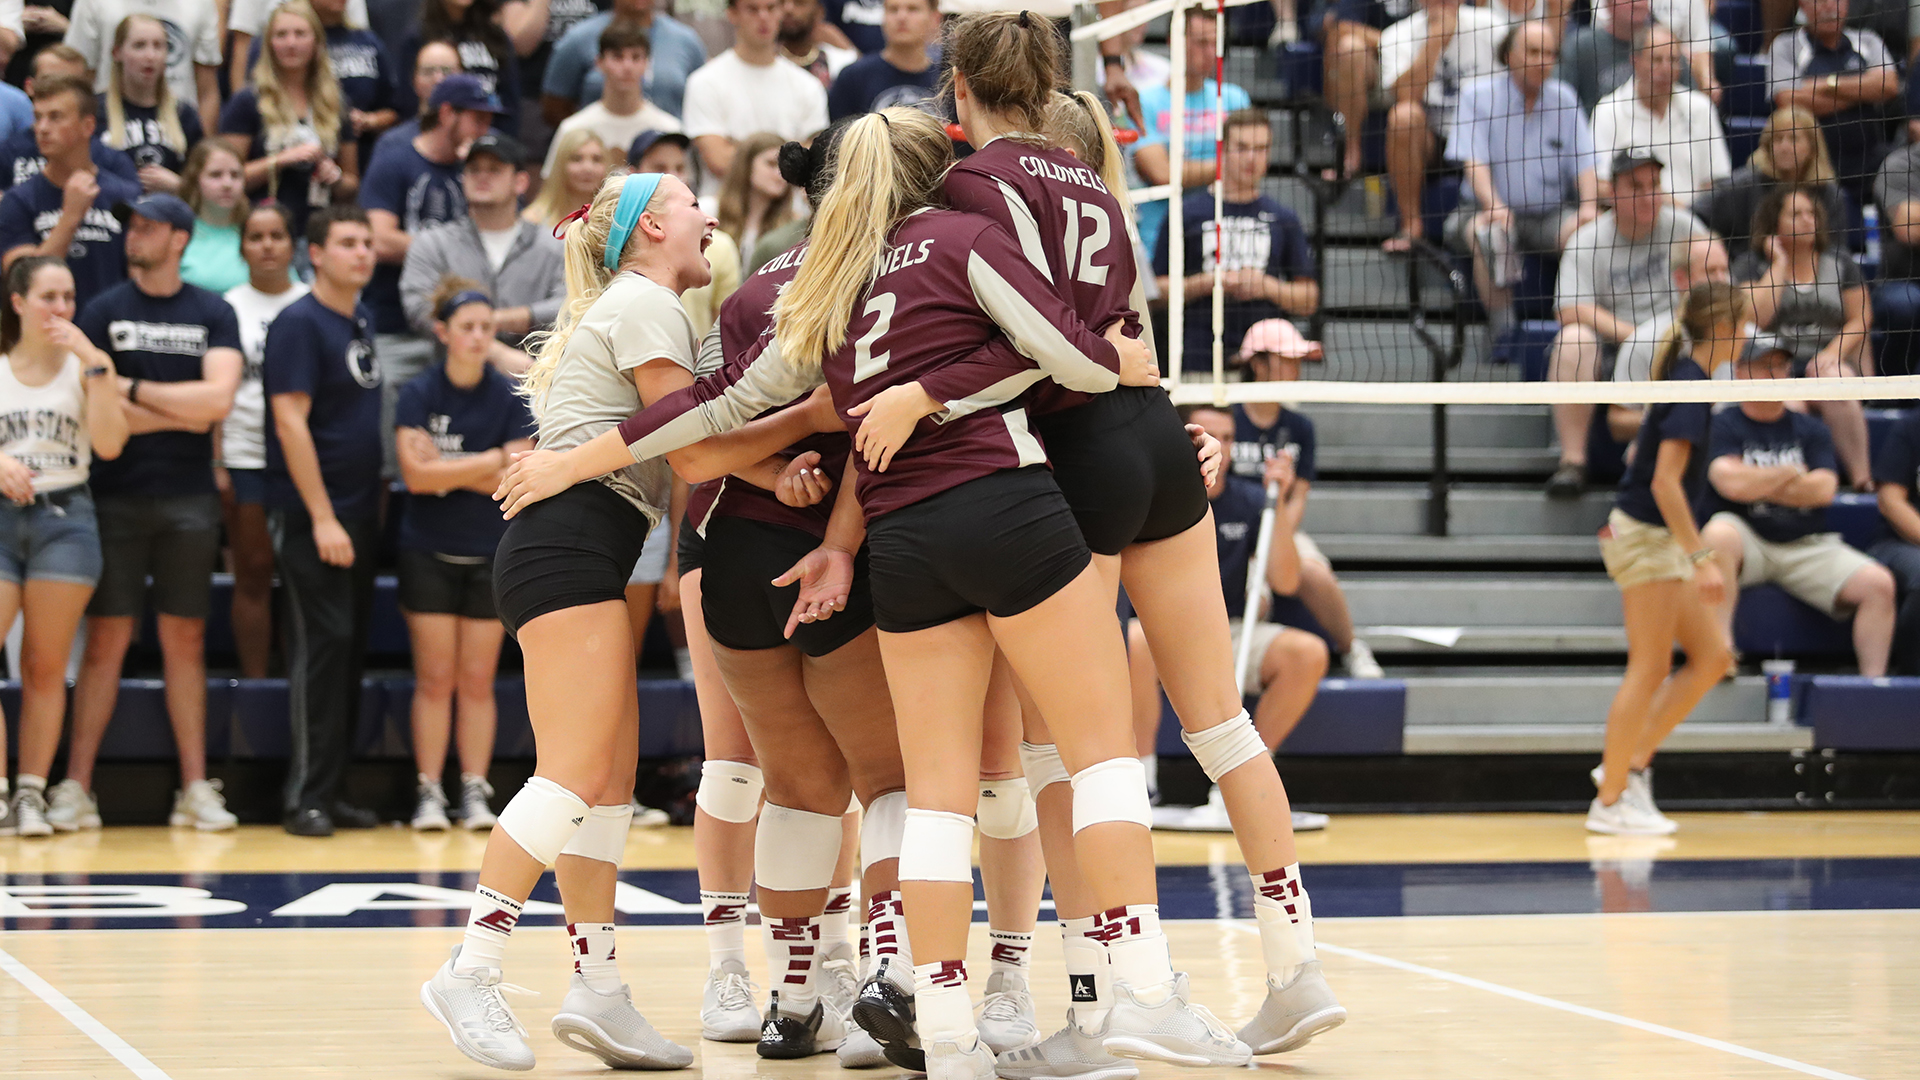 Eku Volleyball Team Goes On The Road To Face Eiu And Siue Eastern Kentucky University Athletics